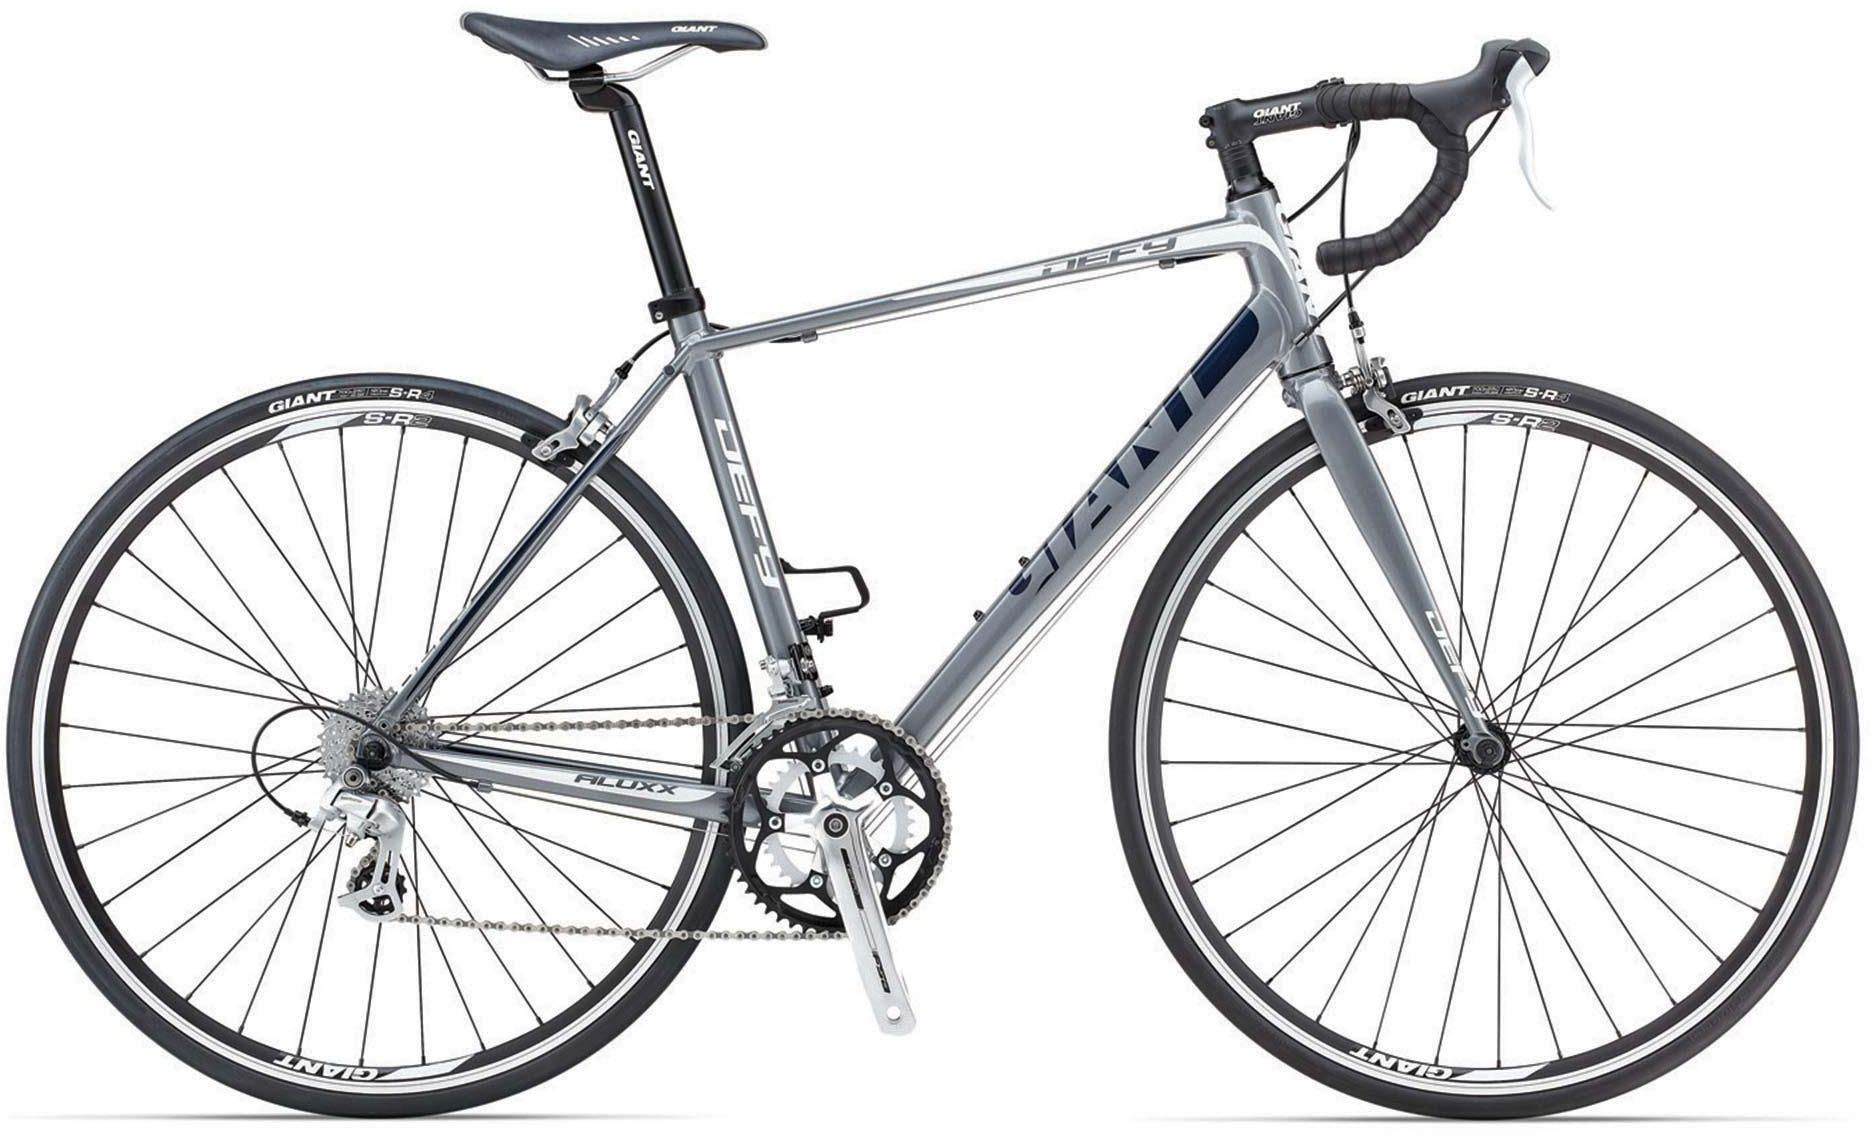 32bb7cf1d4d Giant Defy 5 2013 review - The Bike List